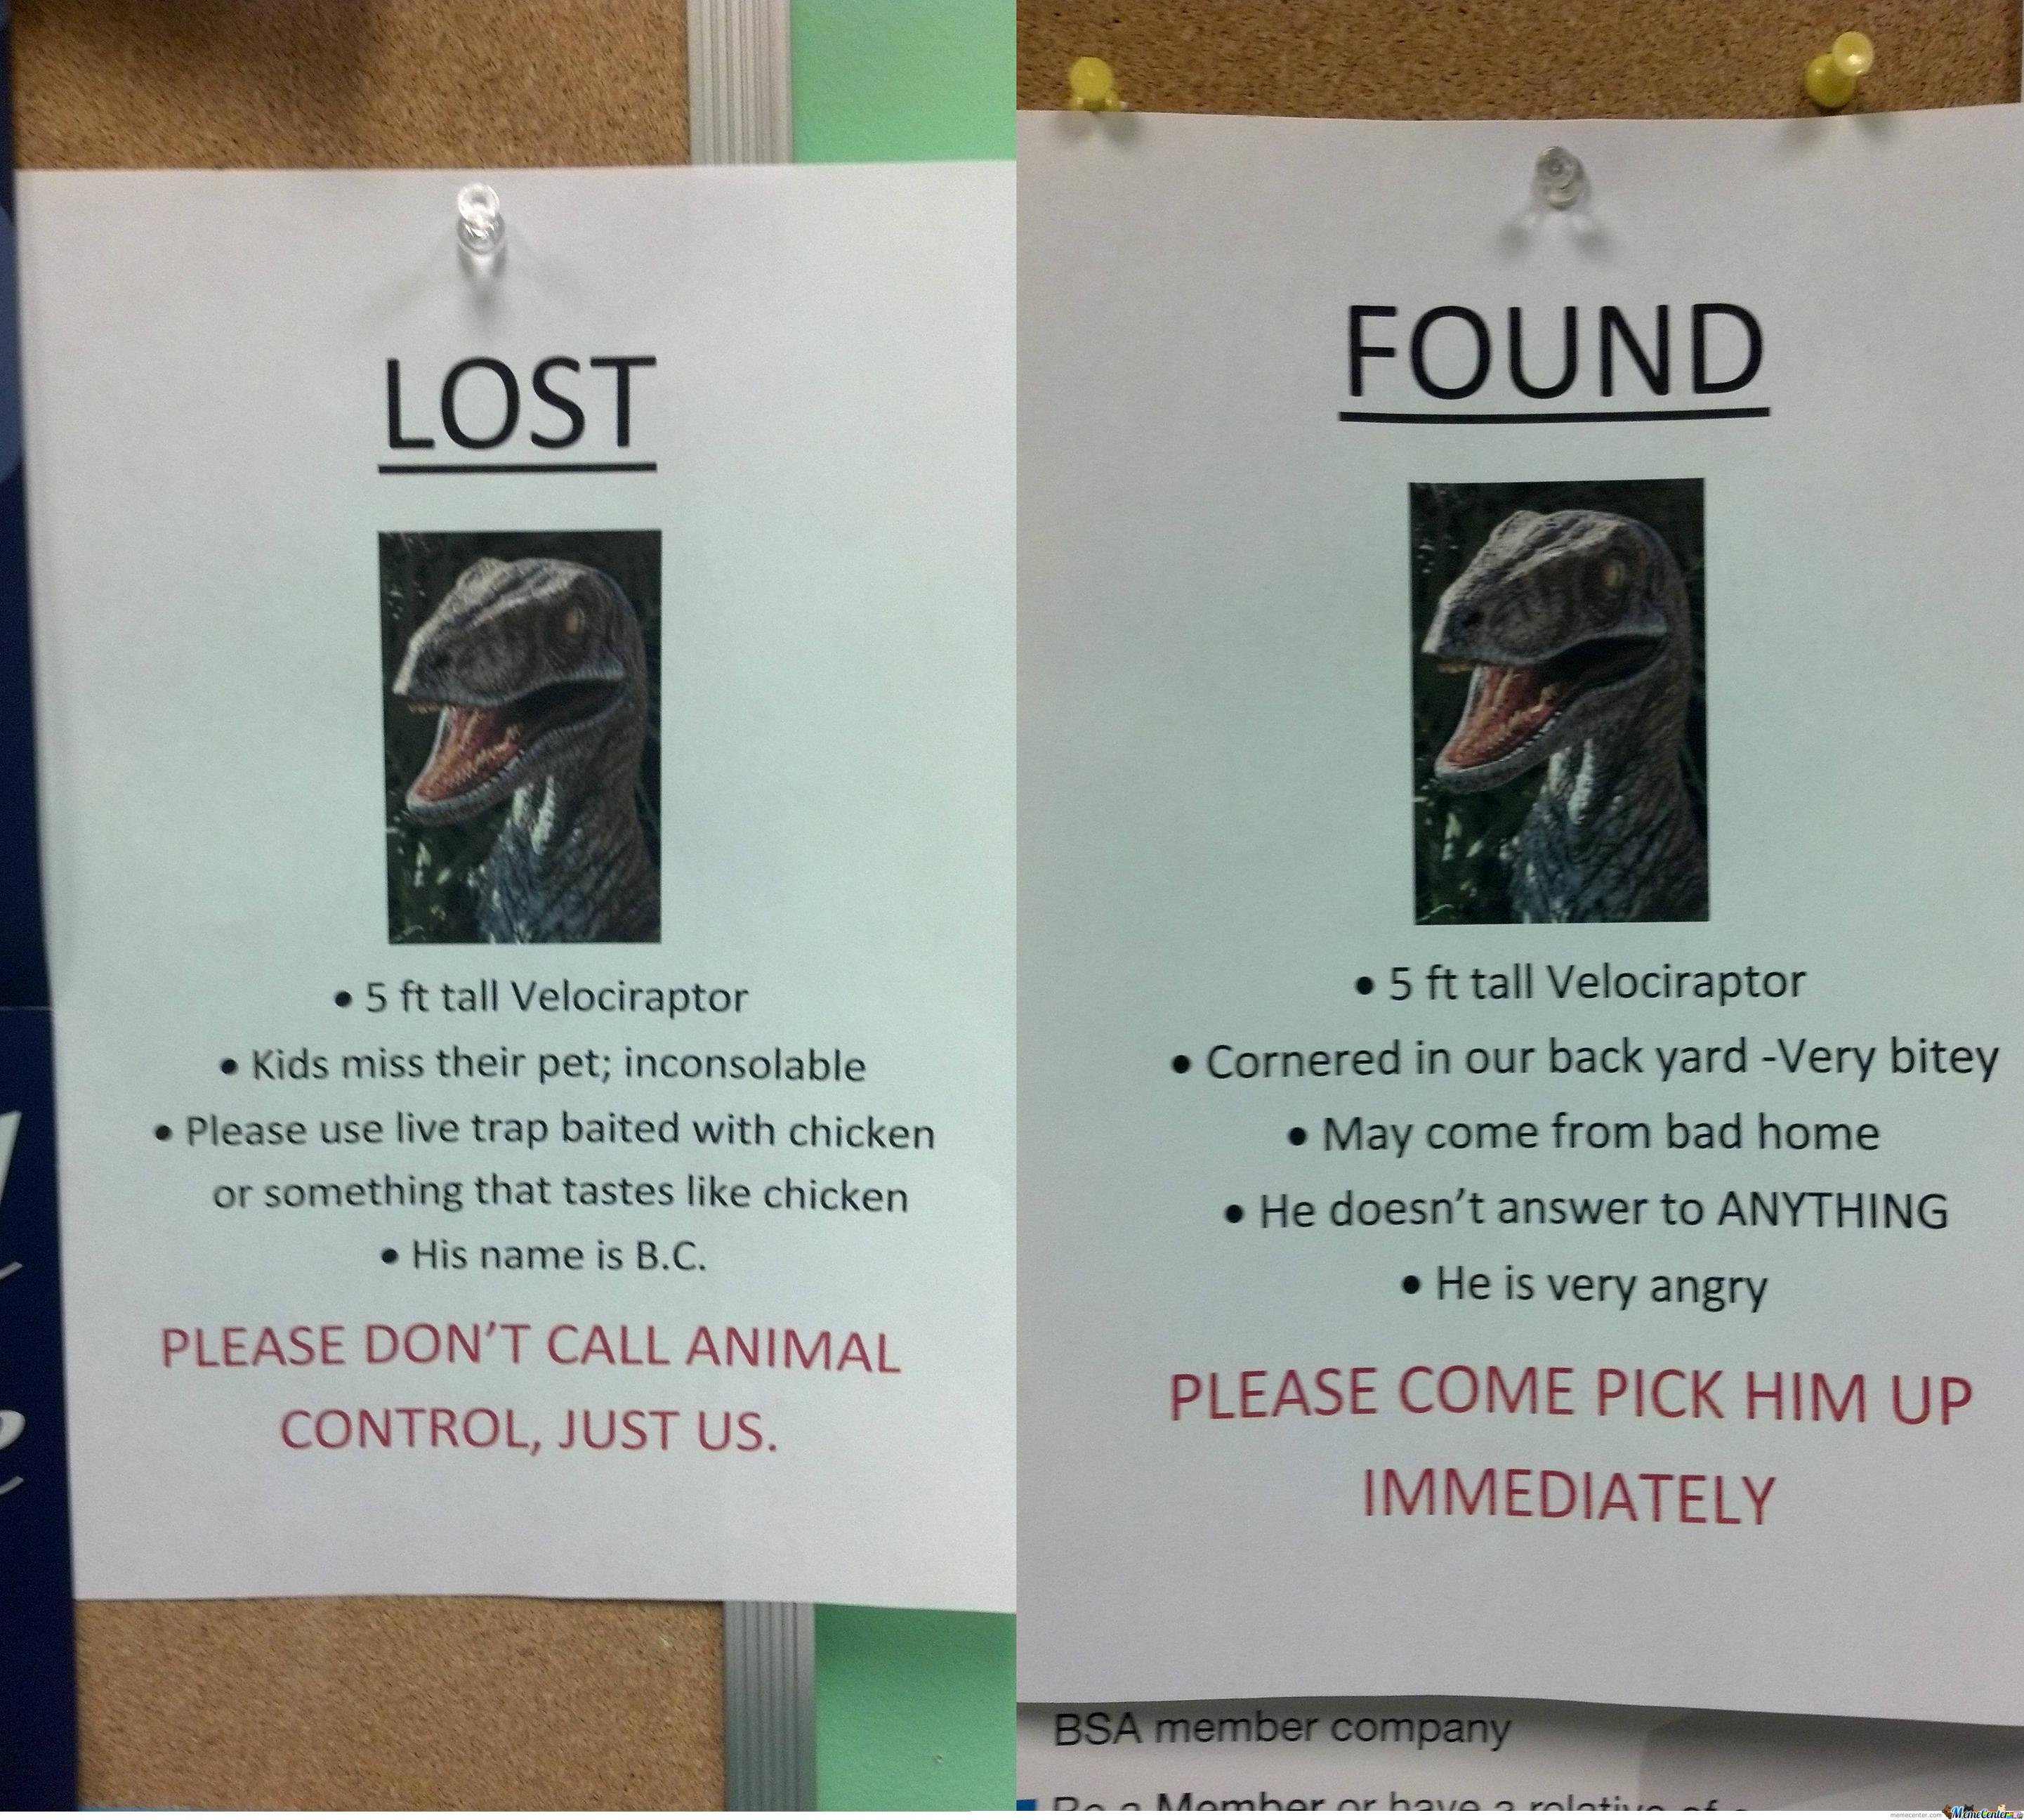 Thank God You Found Him